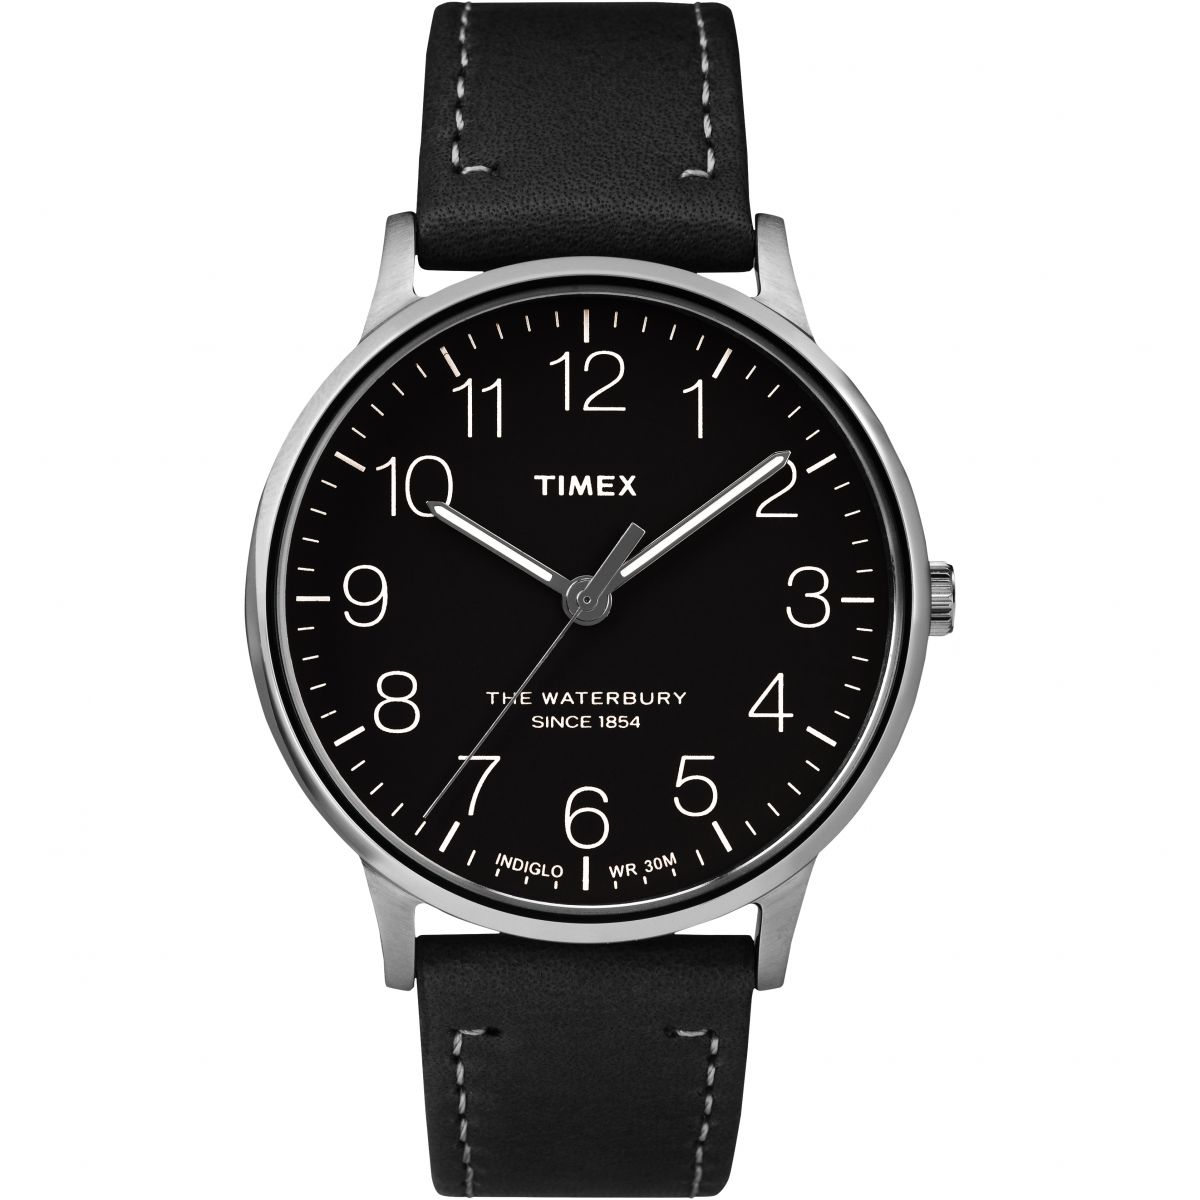 Homme timex le waterbury montre tw2r25500 for The waterbury